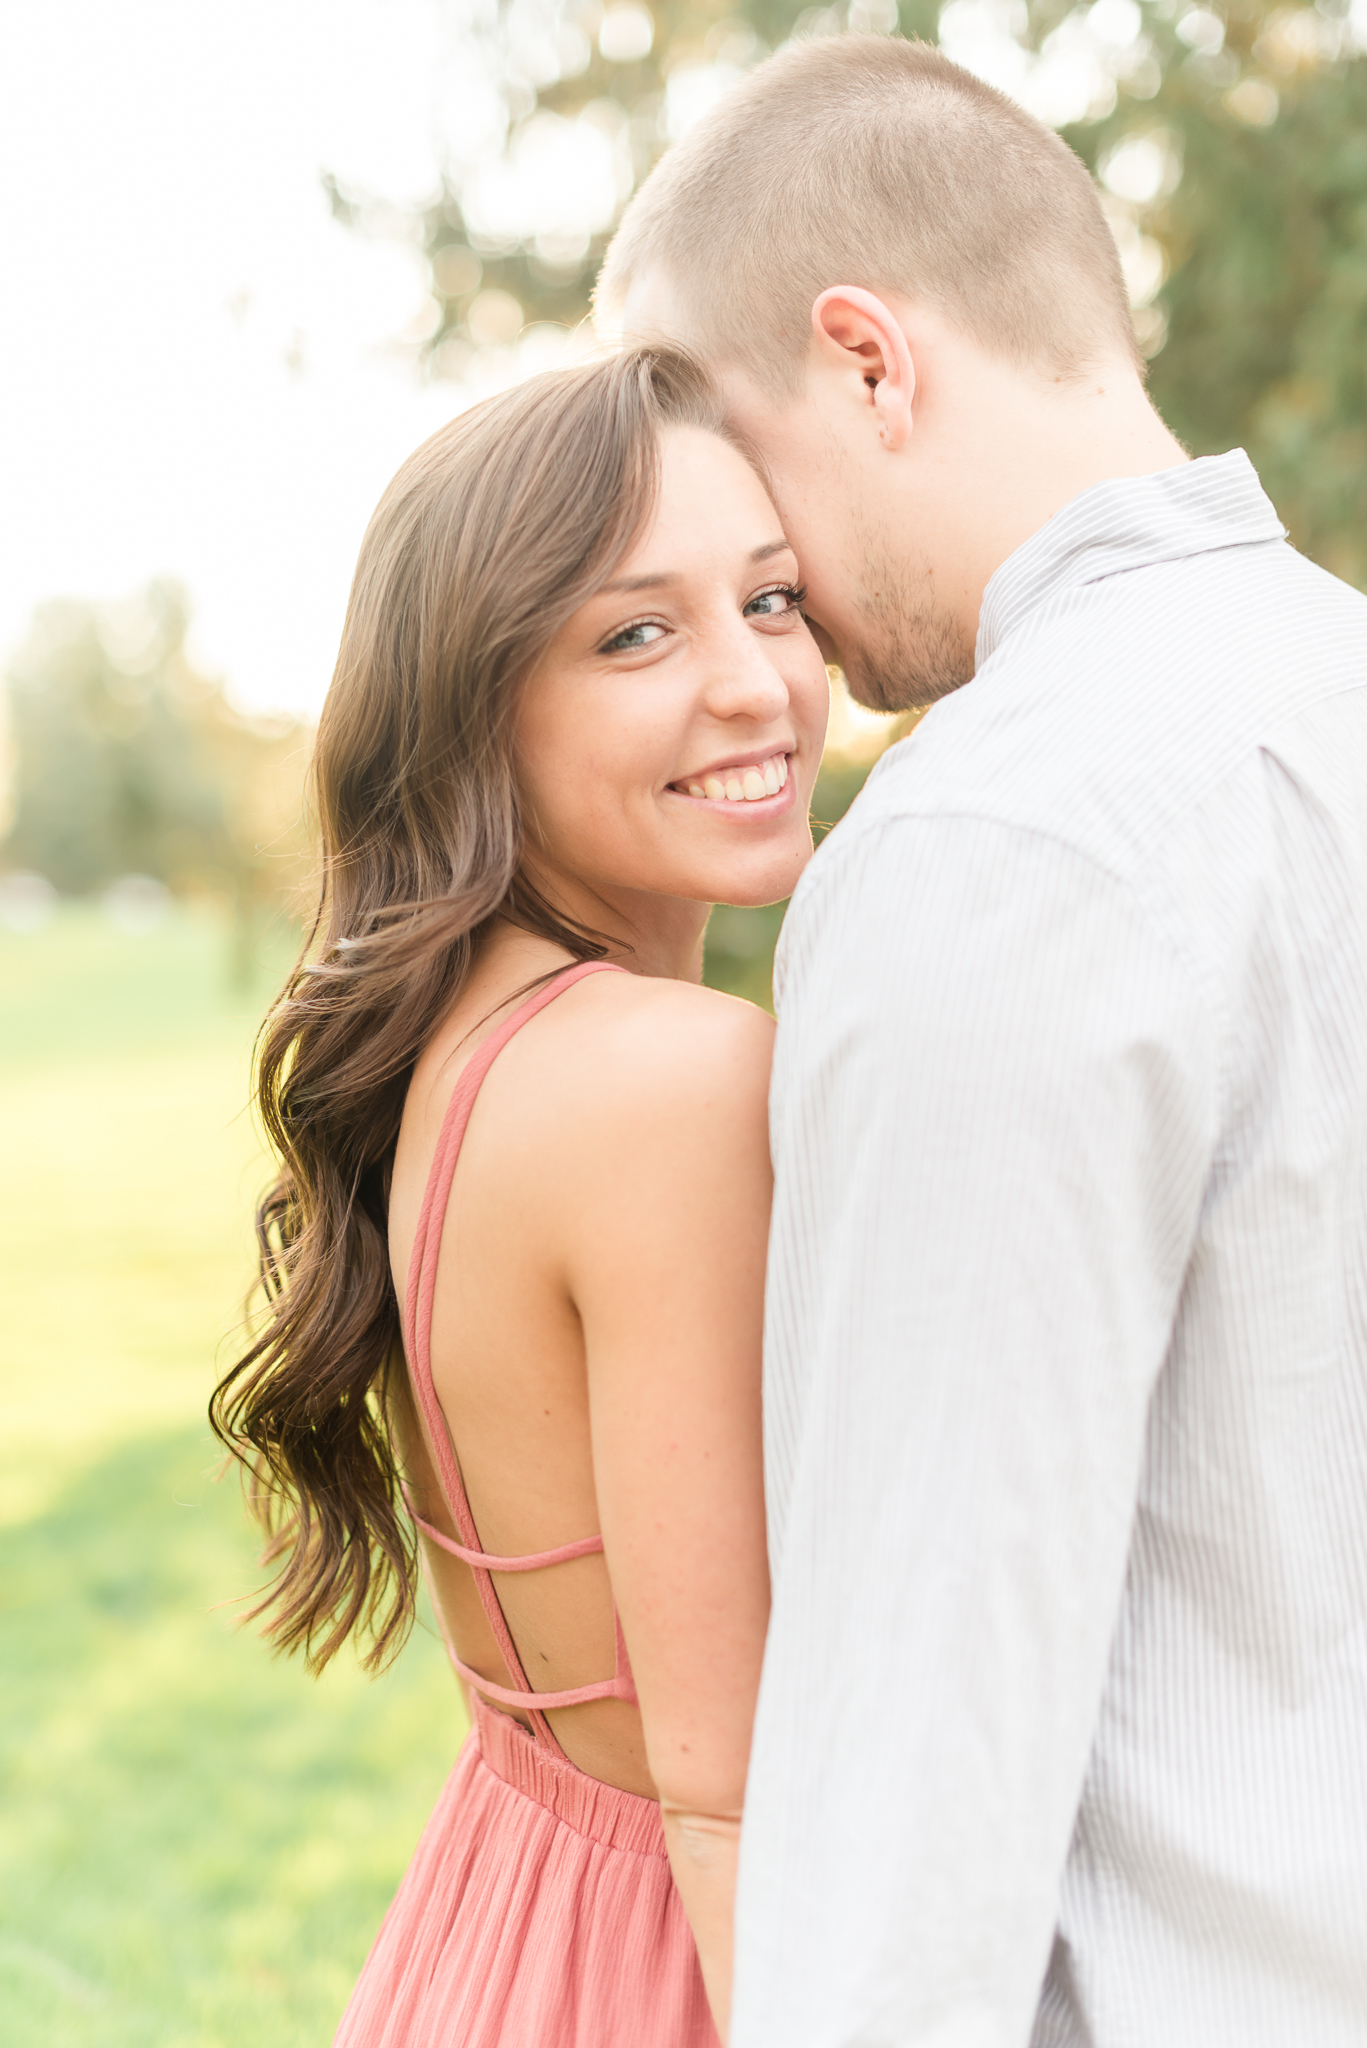 Holliday Park Engagement Session Indianapolis Wedding Photographer-22.jpg